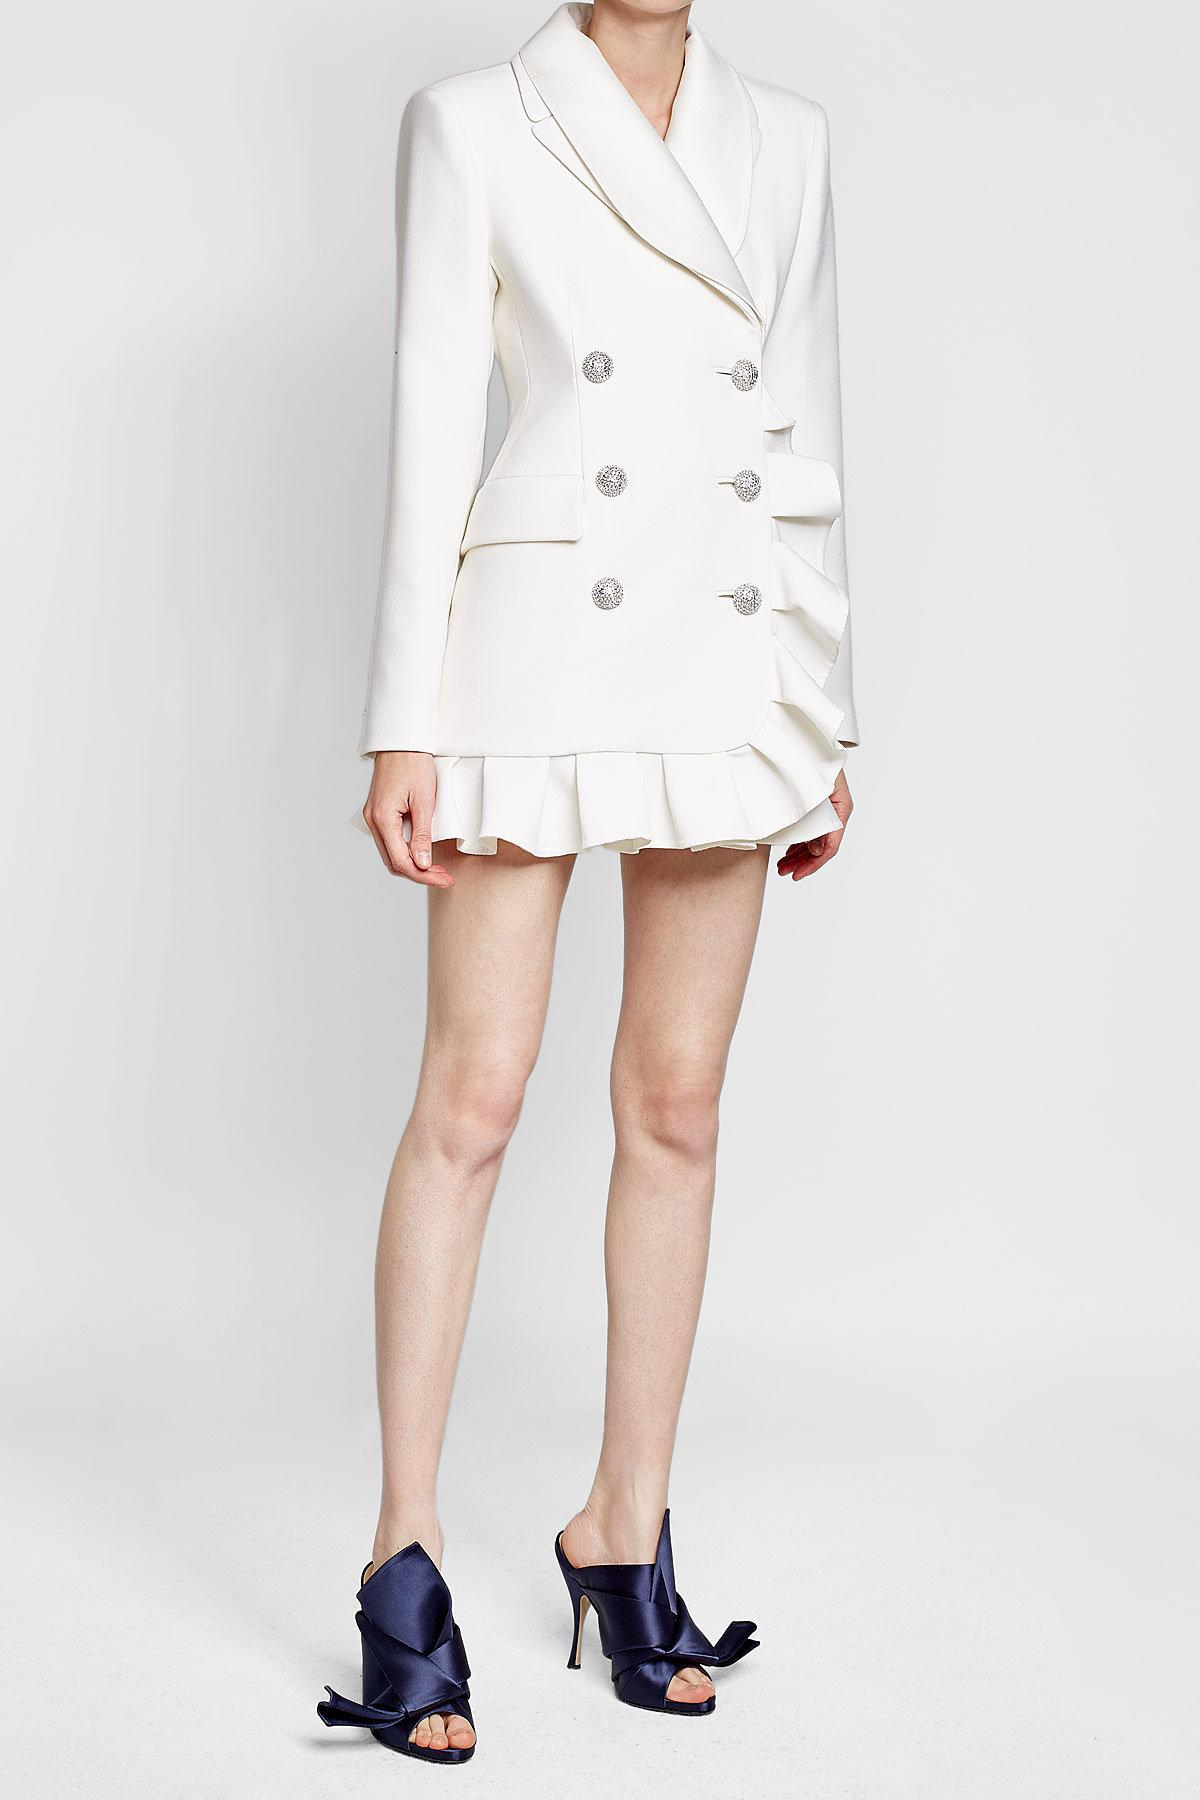 31019a619862 Lyst - Alessandra Rich Wool Jacket Dress With Ruffle Trim in White